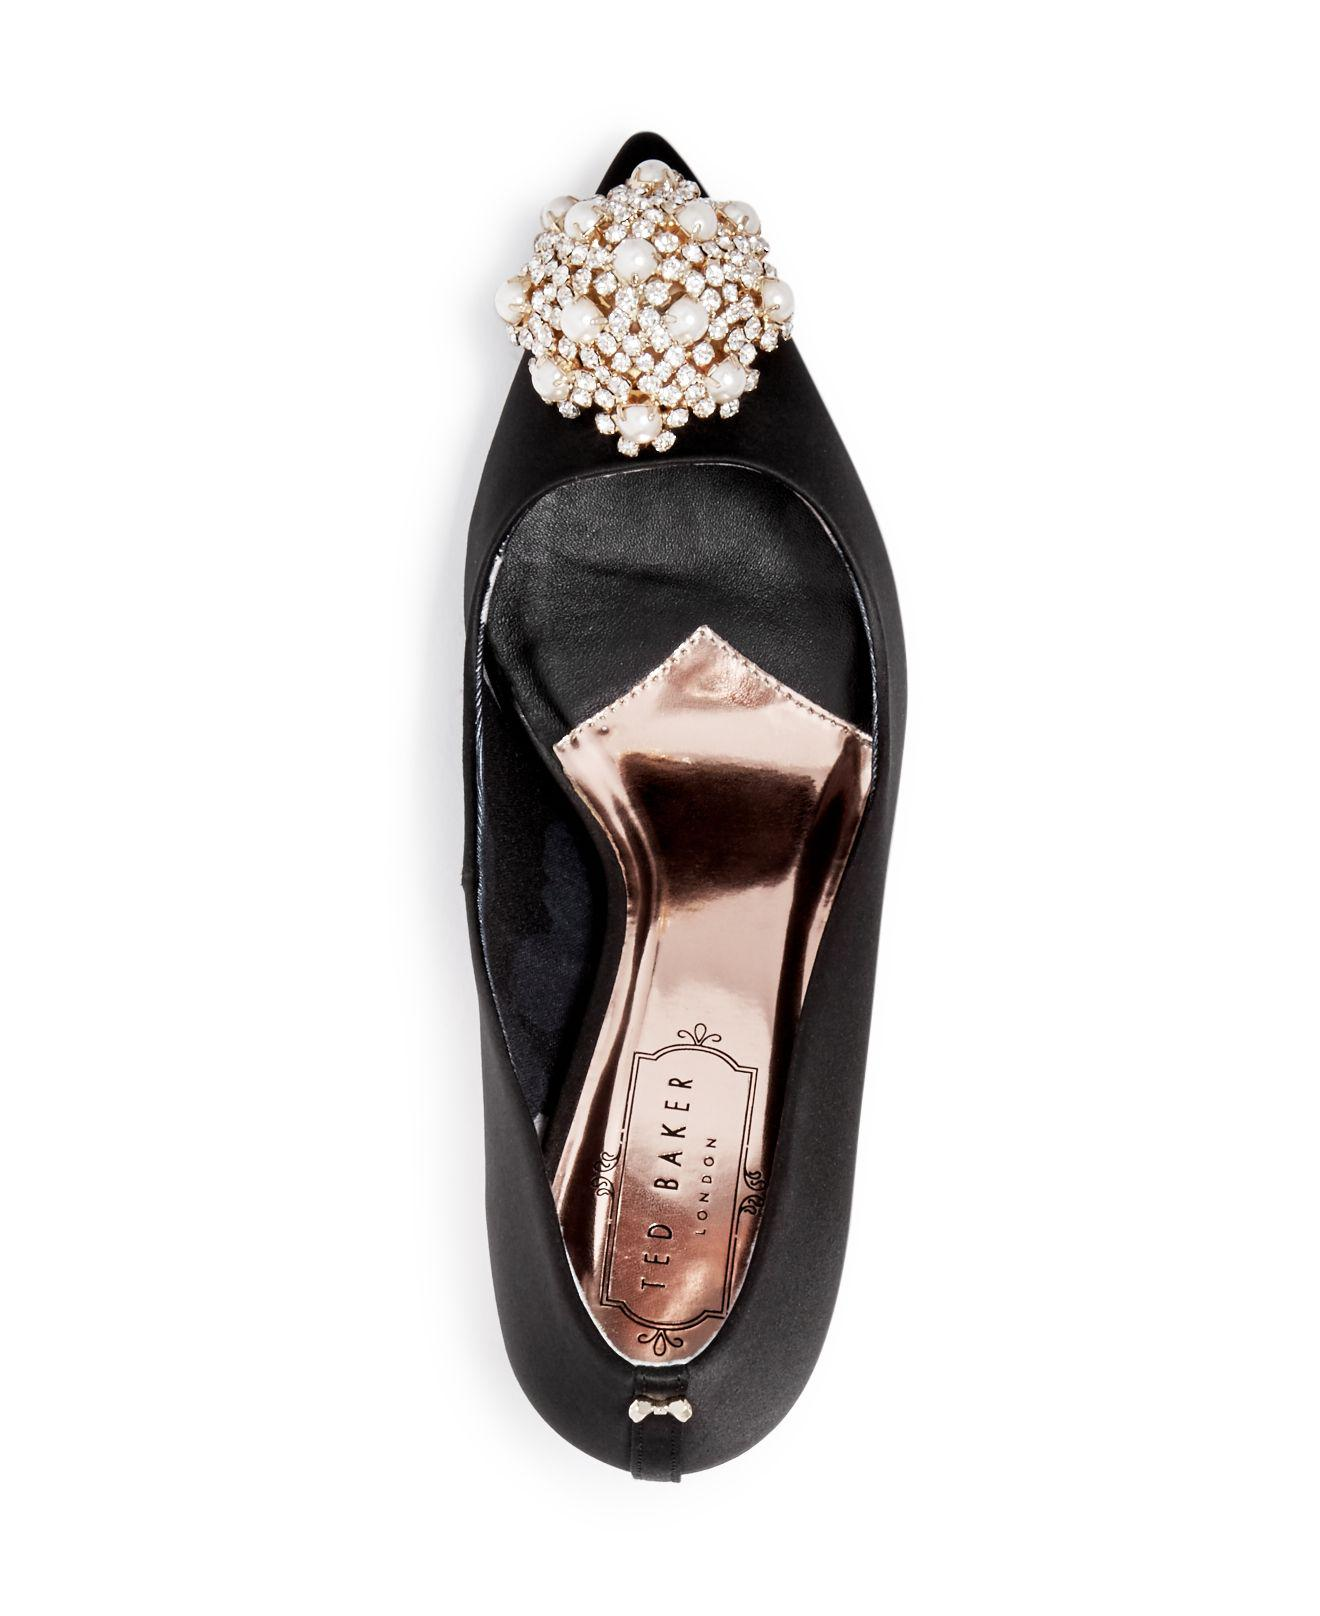 137c19e9e9f579 Ted Baker Women's Dahrlin Embellished Satin Pointed Toe Pumps in ...